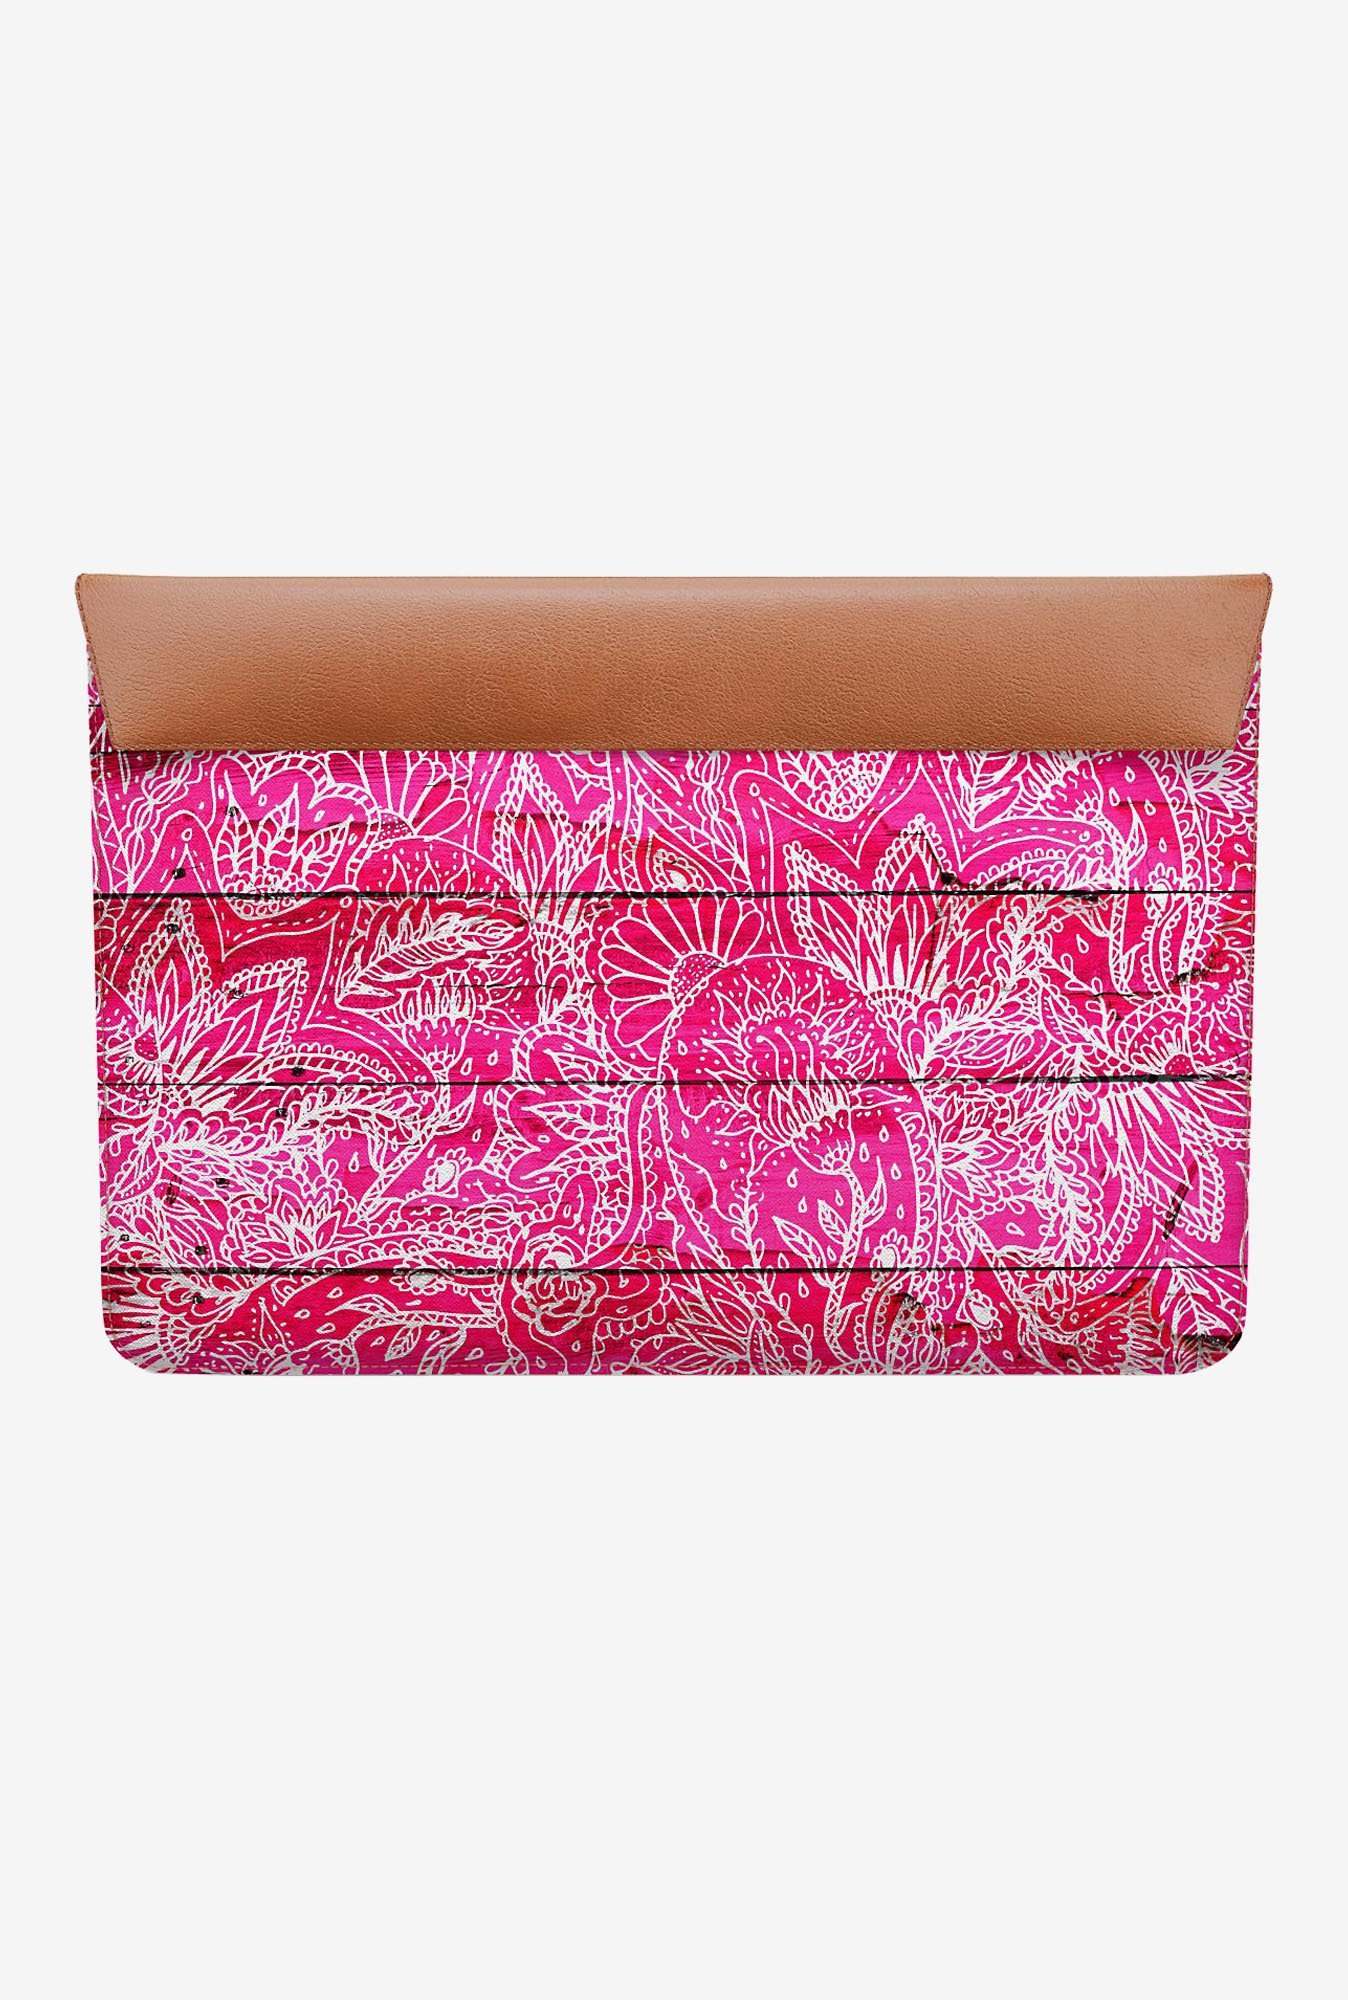 DailyObjects Floral Paisley MacBook Air 11 Envelope Sleeve